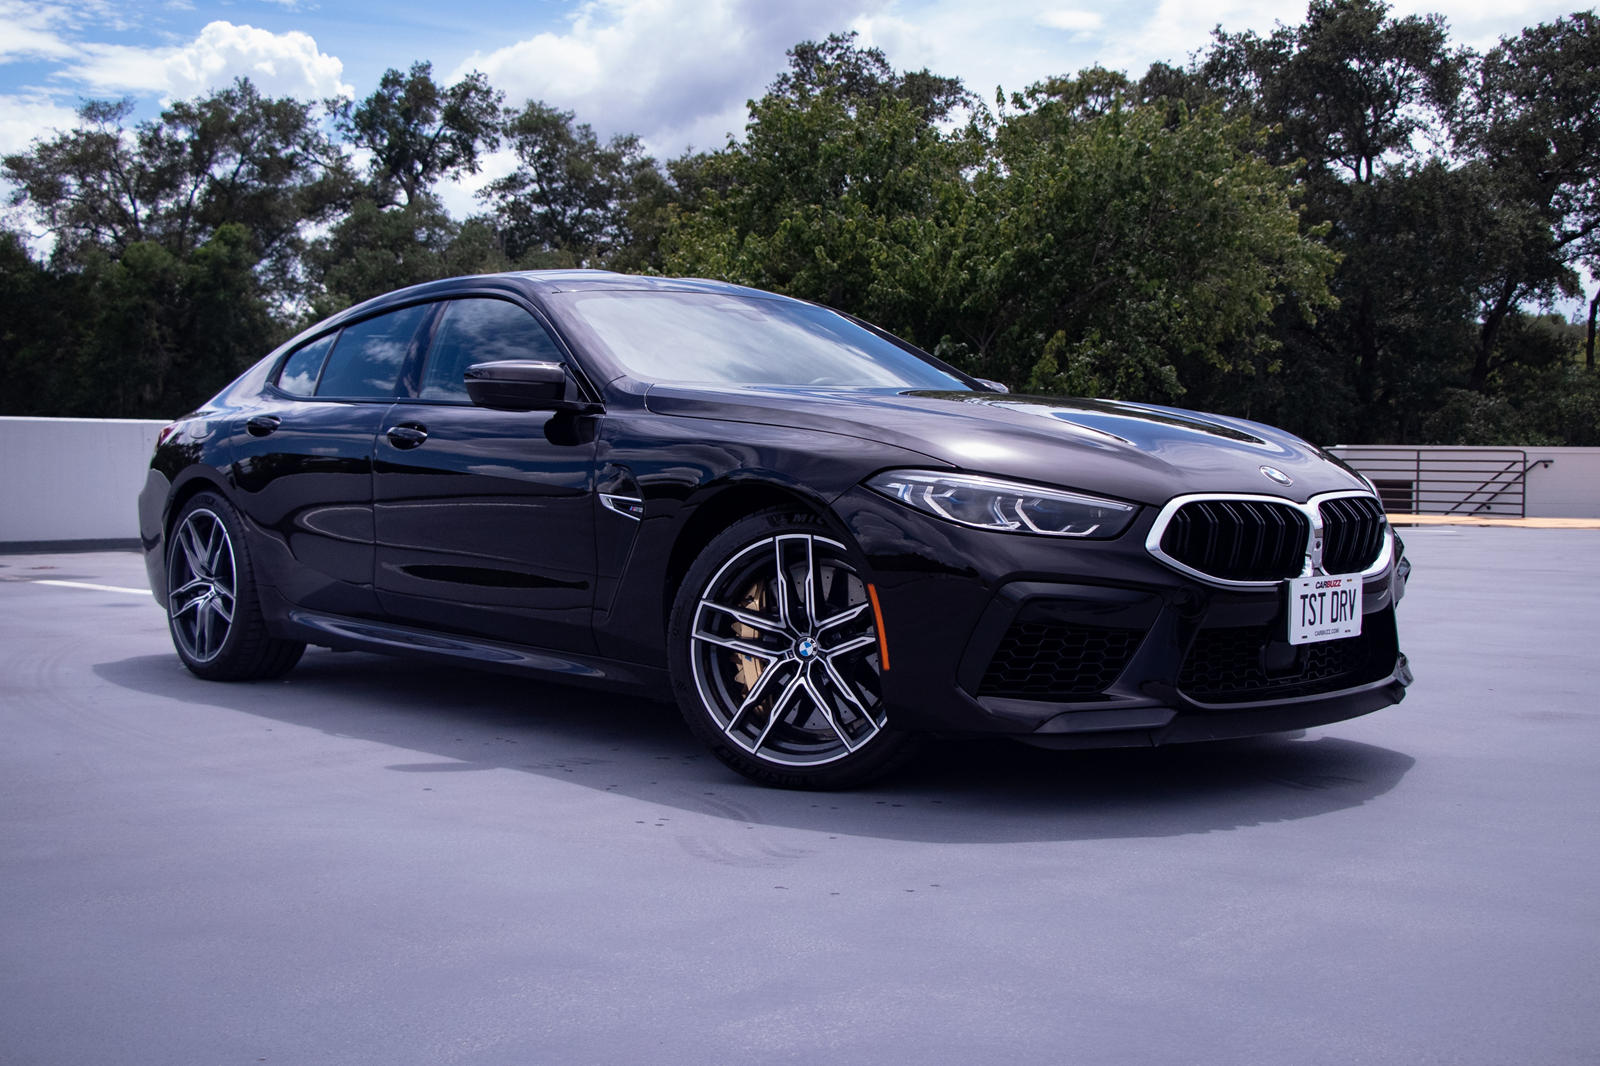 2021 Bmw M8 Gran Coupe Review Trims Specs Price New Interior Features Exterior Design And Specifications Carbuzz